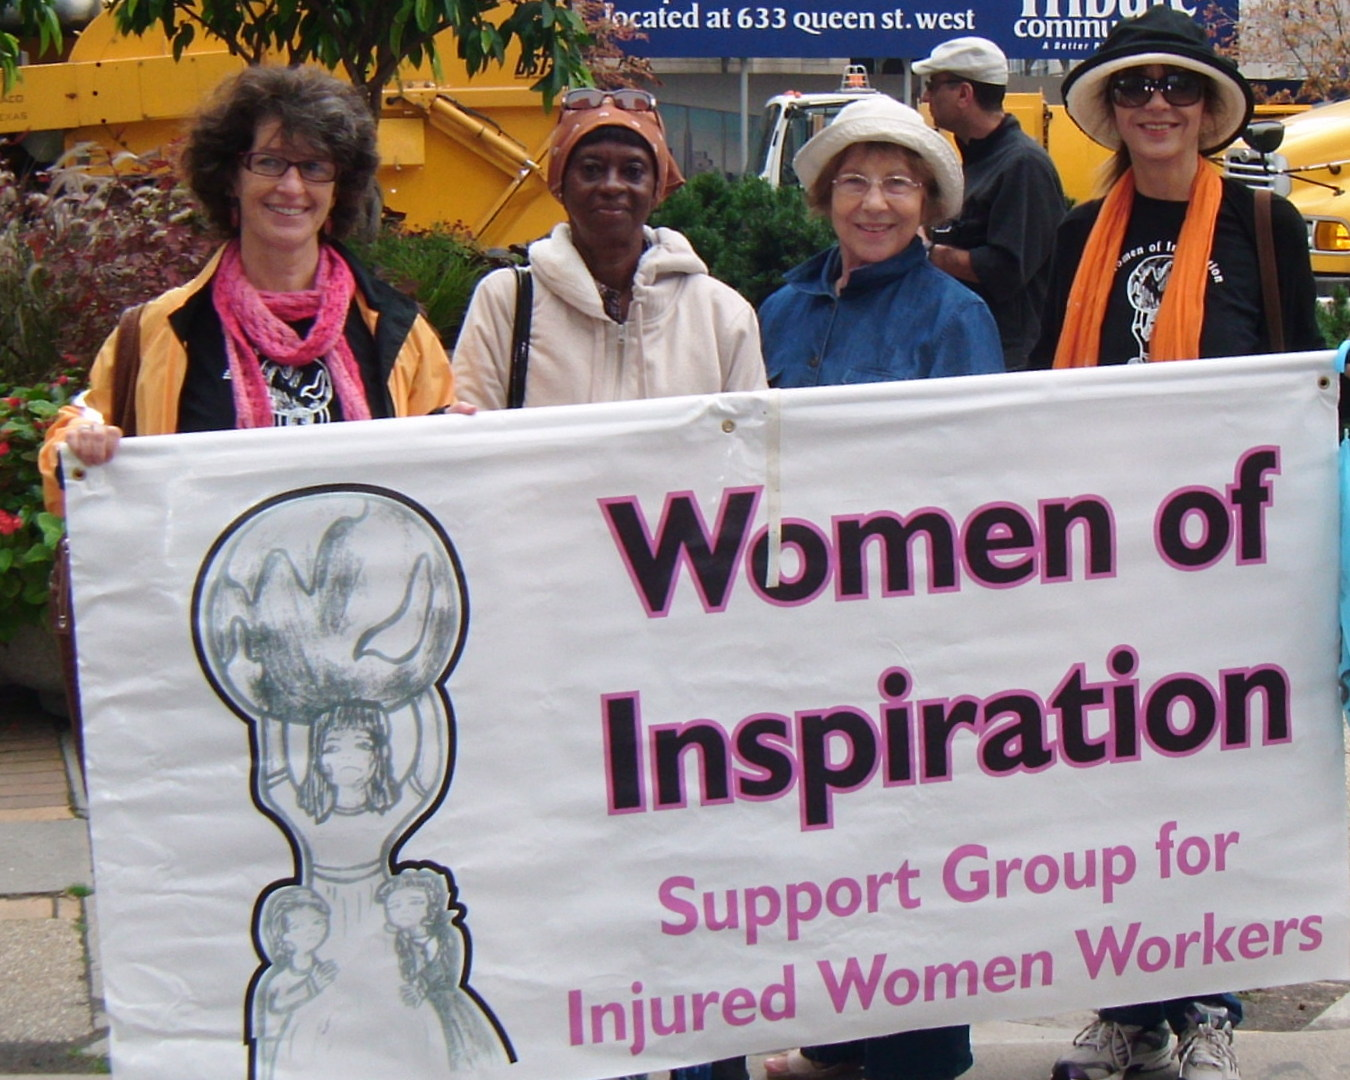 Women of Inspiration march in Labour Day rally